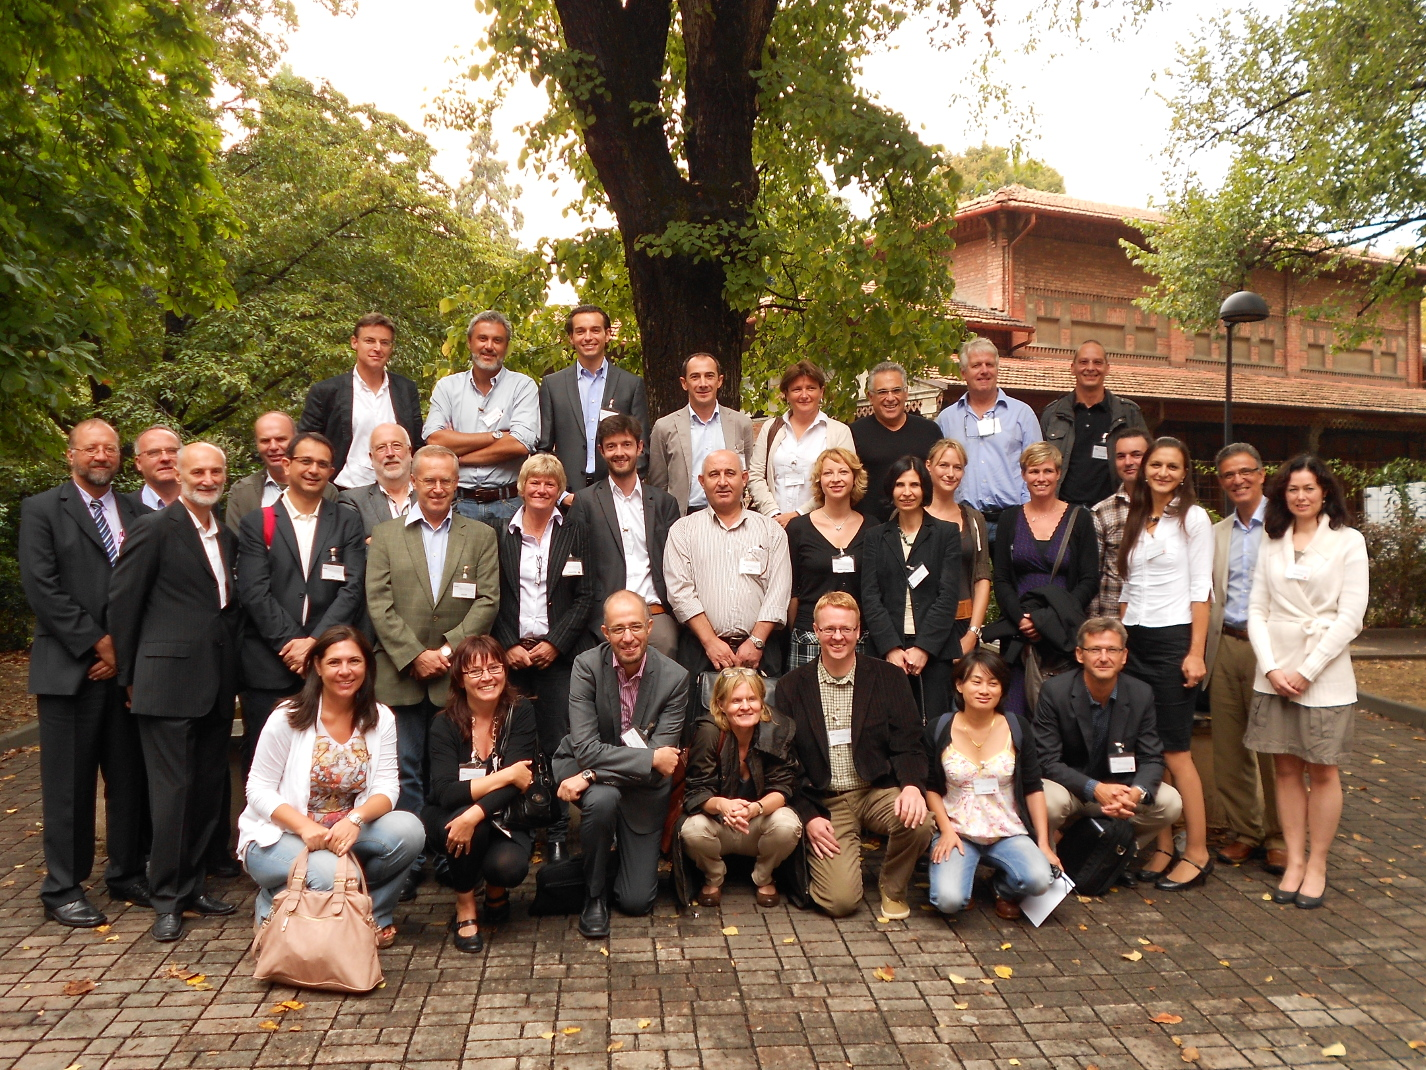 Photograph of the participants of the GENIEUR meeting in Bologna, Italy, 2012. (Please click to view full size image. To close the full size image, click on it again.)